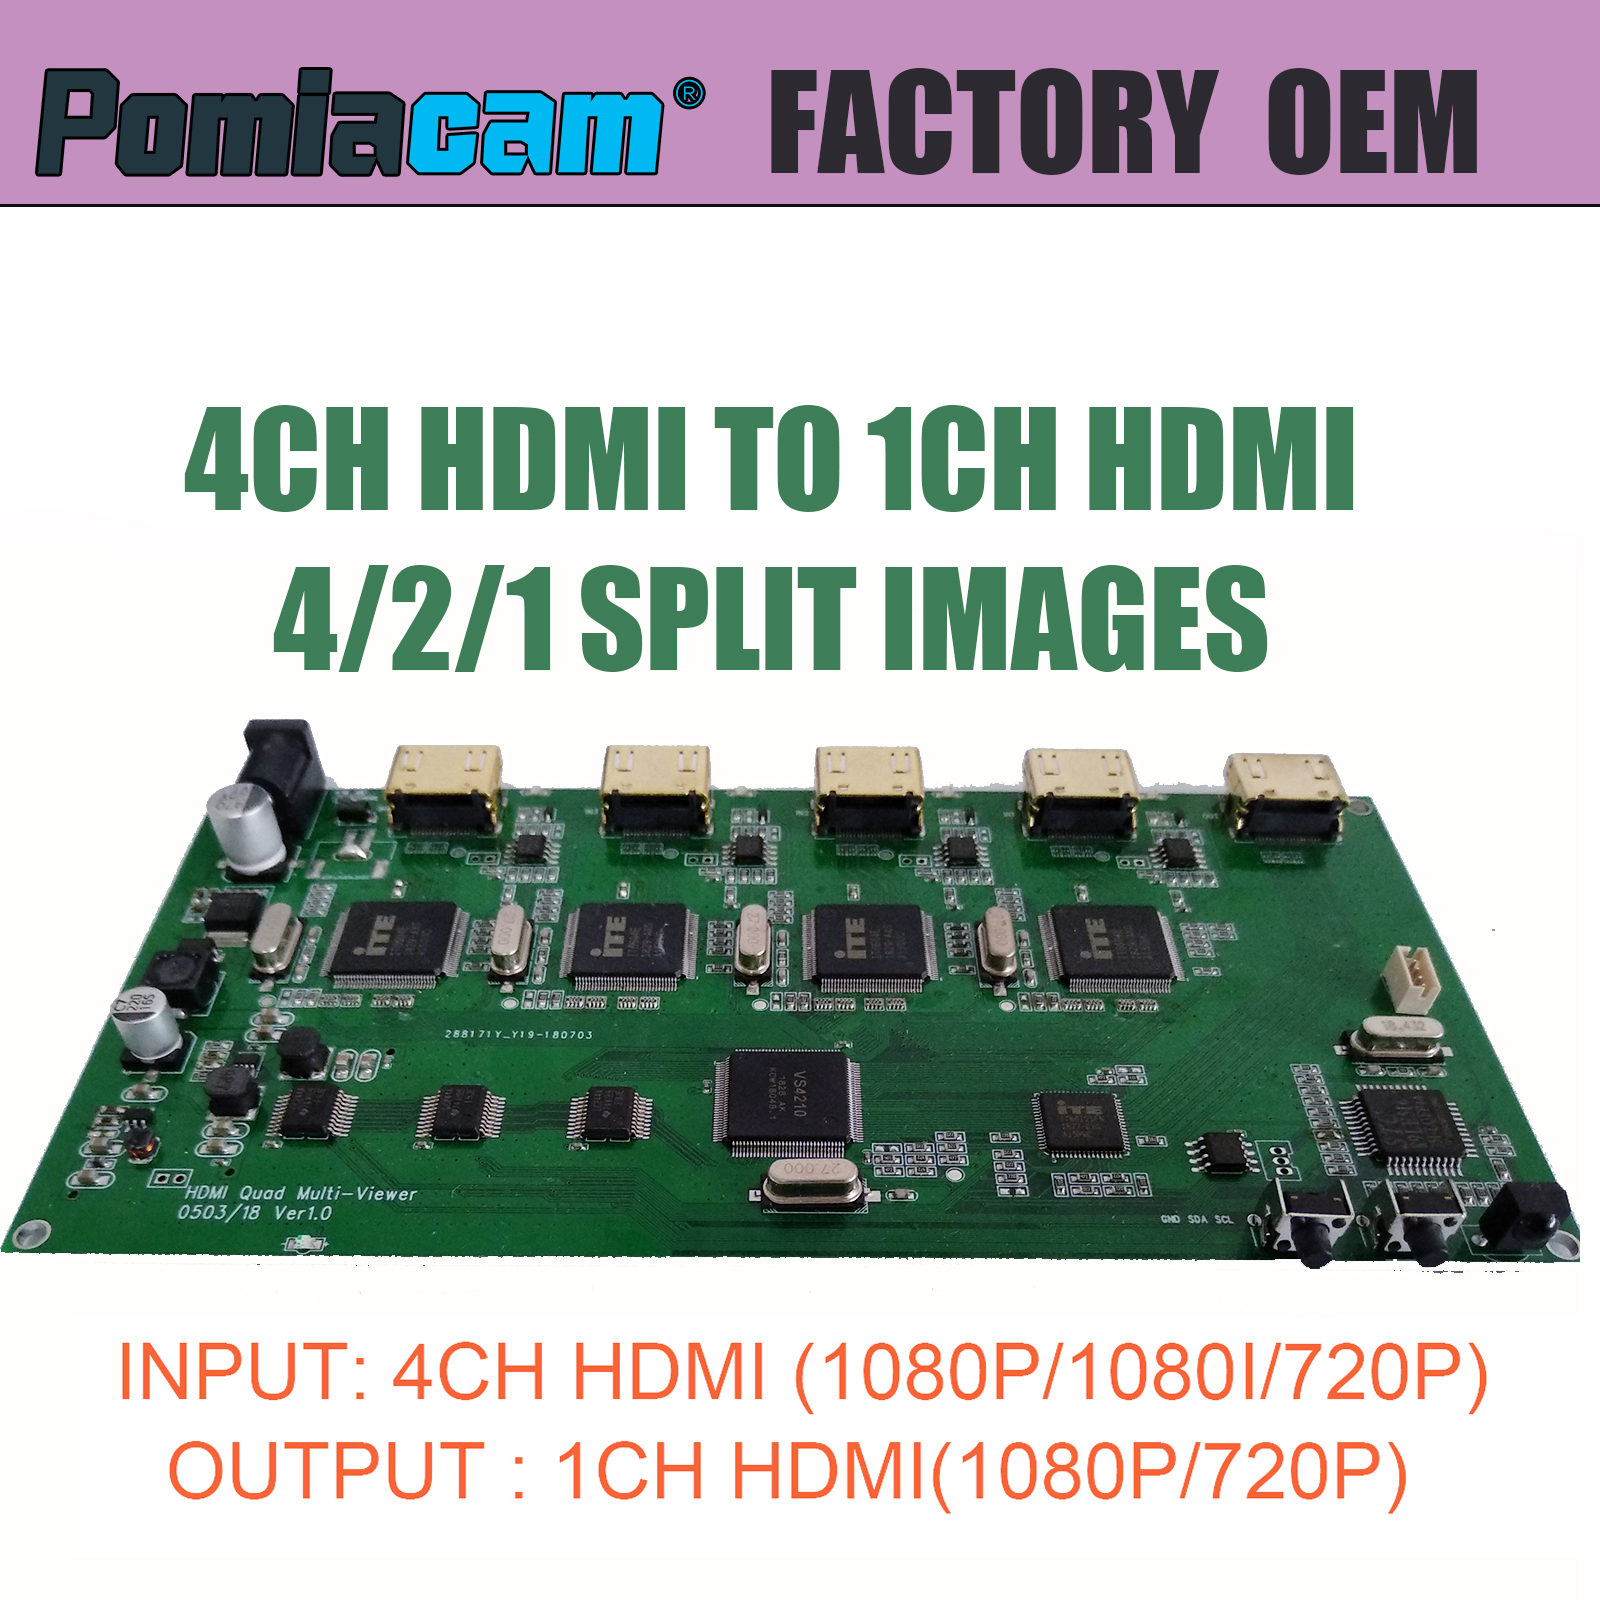 HD30 factory 4CH HDMI to 1CH HDMI video multiple split images converter ,4 split images in one screen , for computer gameHD30 factory 4CH HDMI to 1CH HDMI video multiple split images converter ,4 split images in one screen , for computer game